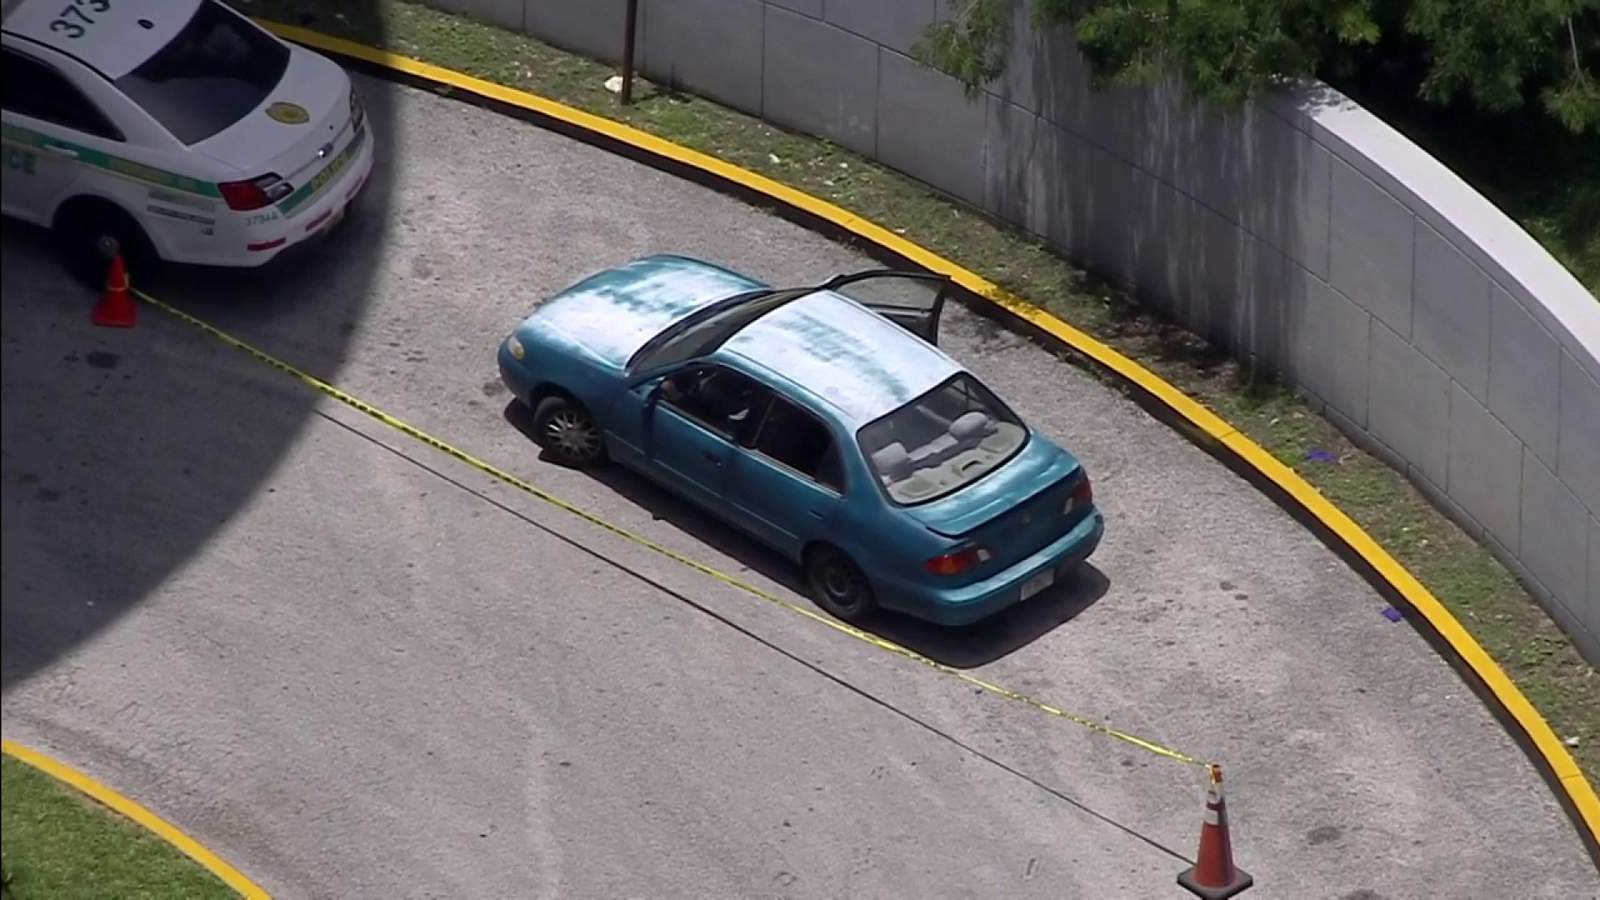 Woman arrives to JMH with 2 girls injured in Hialeah shooting